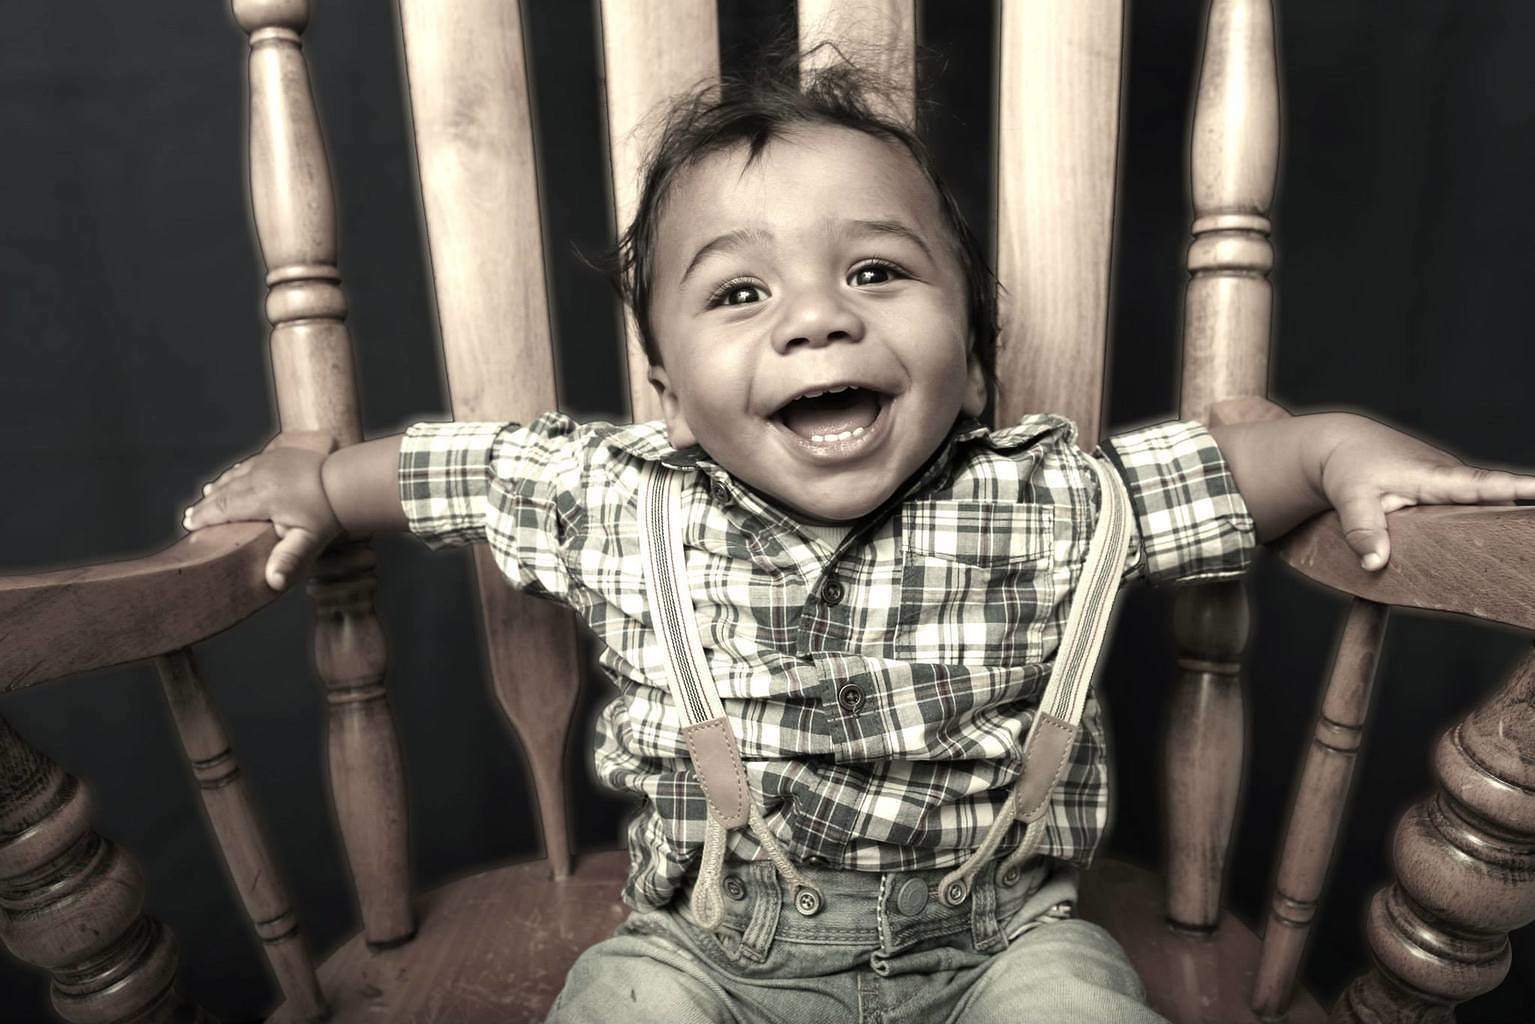 Embodied-Creative-Agency-Photoshoot-Photography-Little -Man-Big-Chair-Jaden